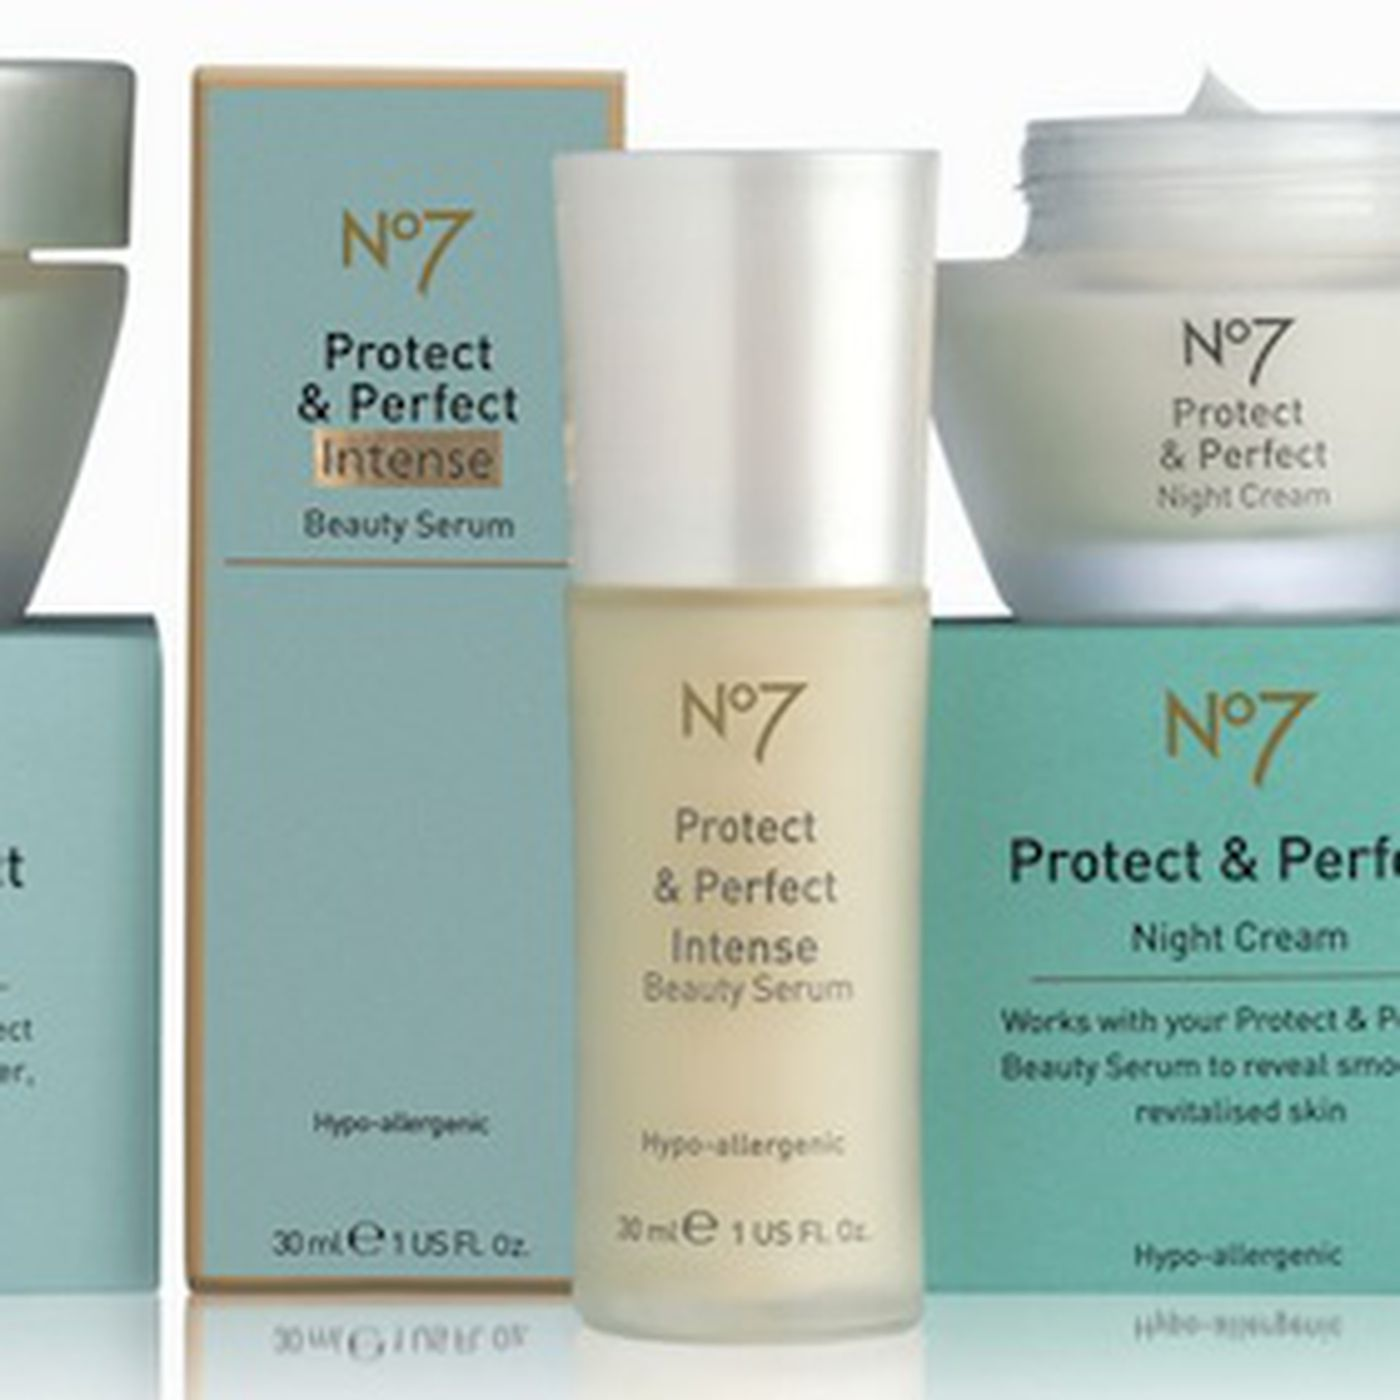 Boots No7 Wins Four Good Housekeeping Awards, Here's a